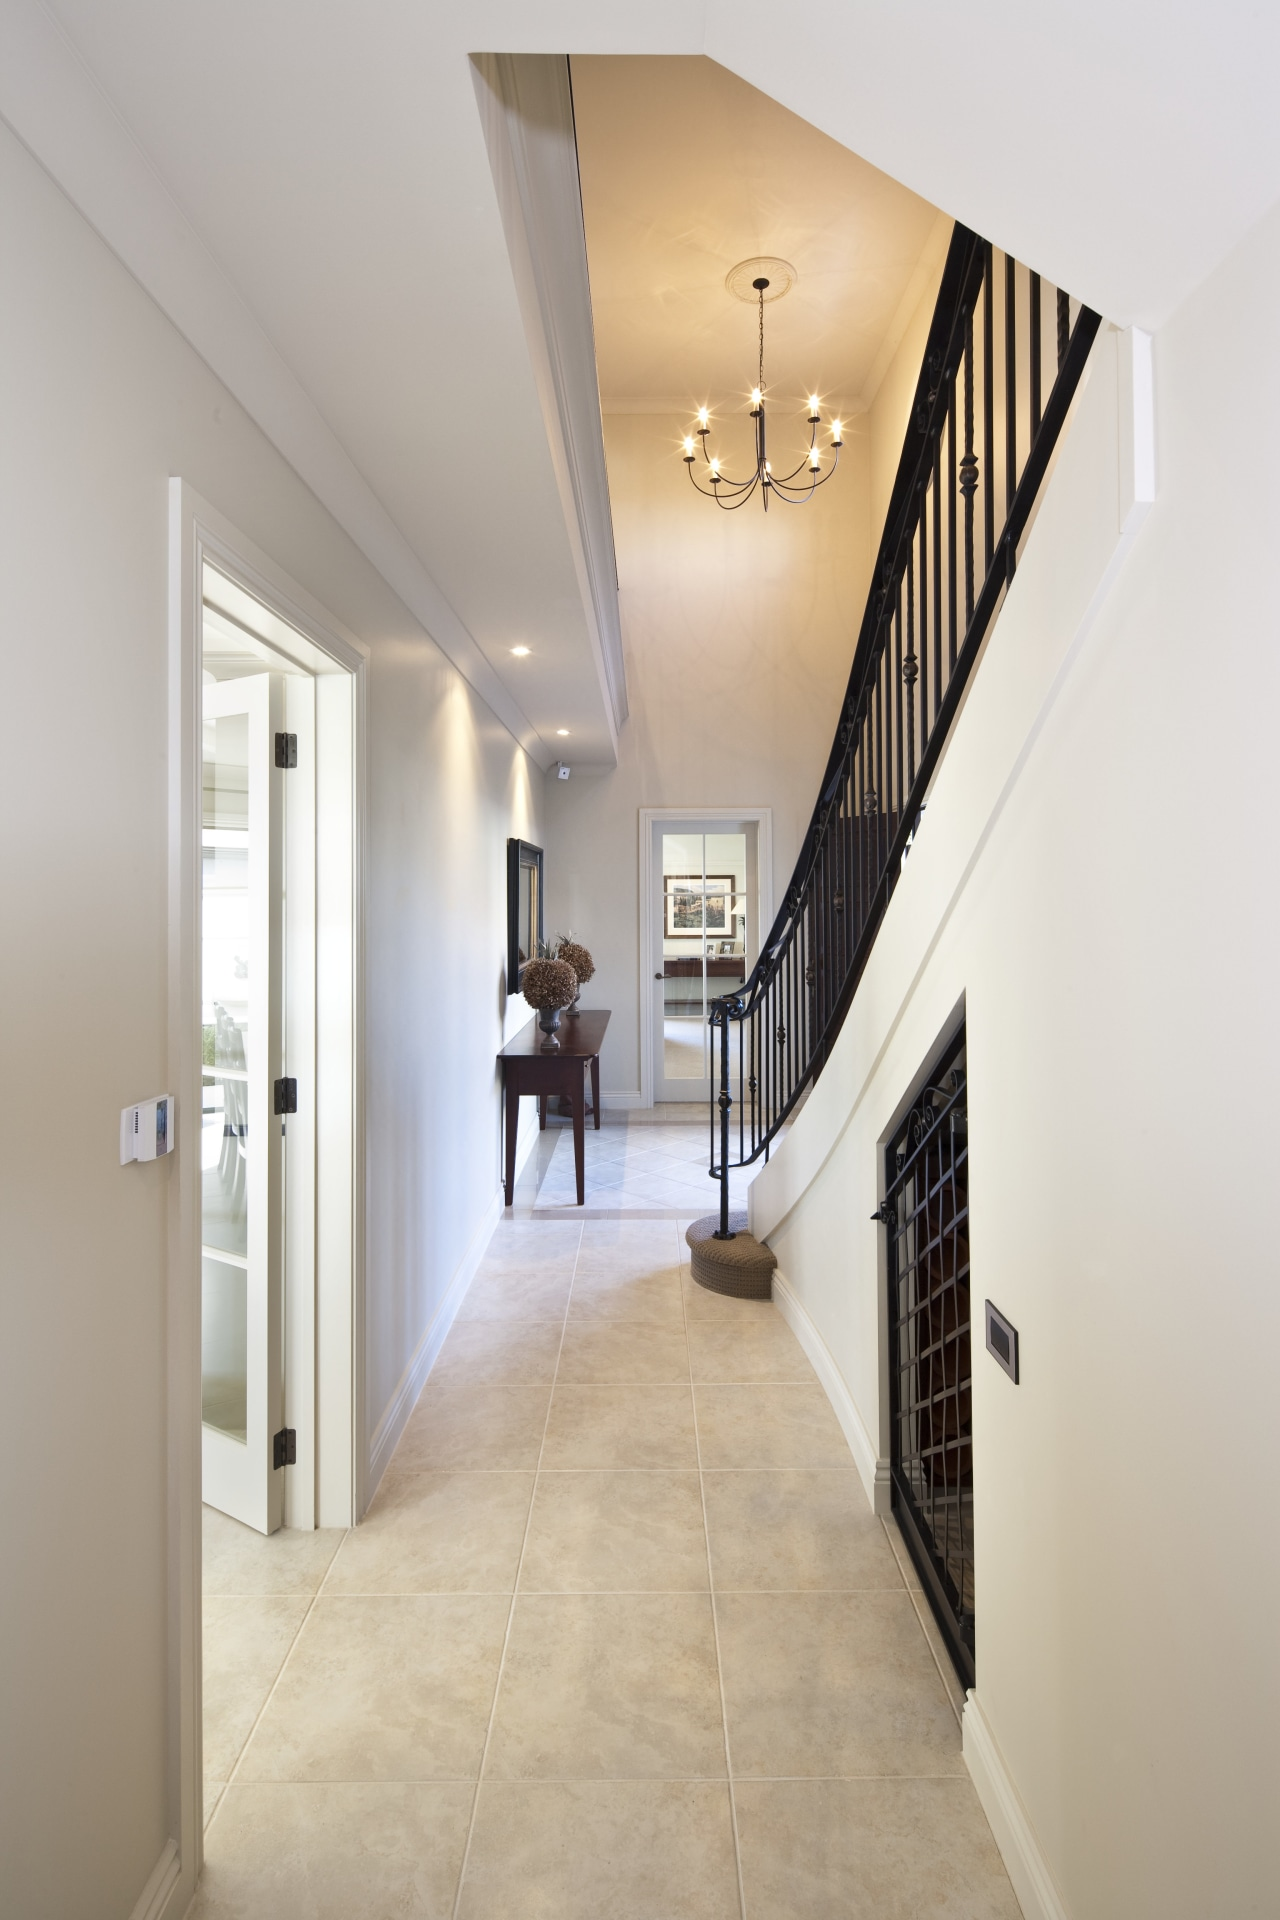 View of a hallway with tiled floors. apartment, architecture, ceiling, daylighting, estate, floor, flooring, hall, handrail, home, house, interior design, lobby, property, real estate, stairs, wall, wood flooring, gray